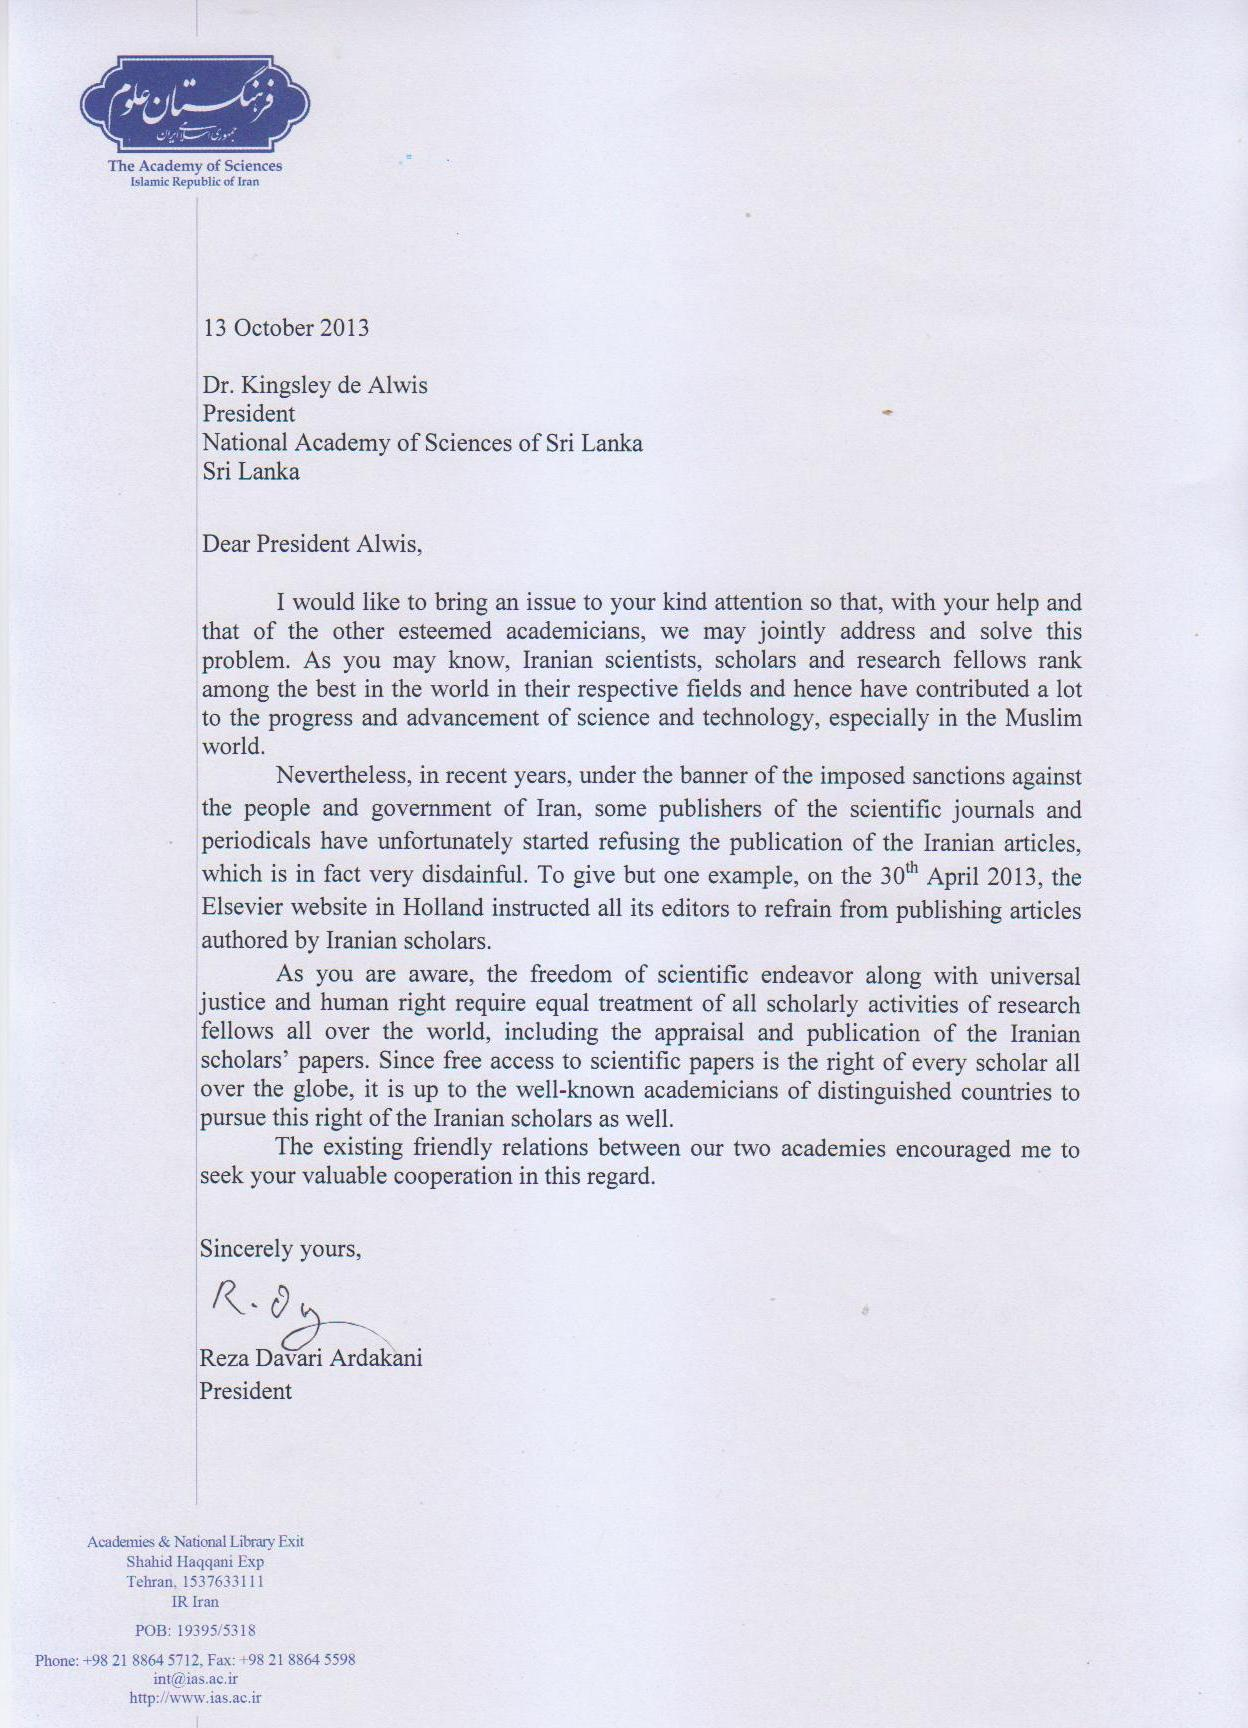 Letter from Iranian Academy of Sciences